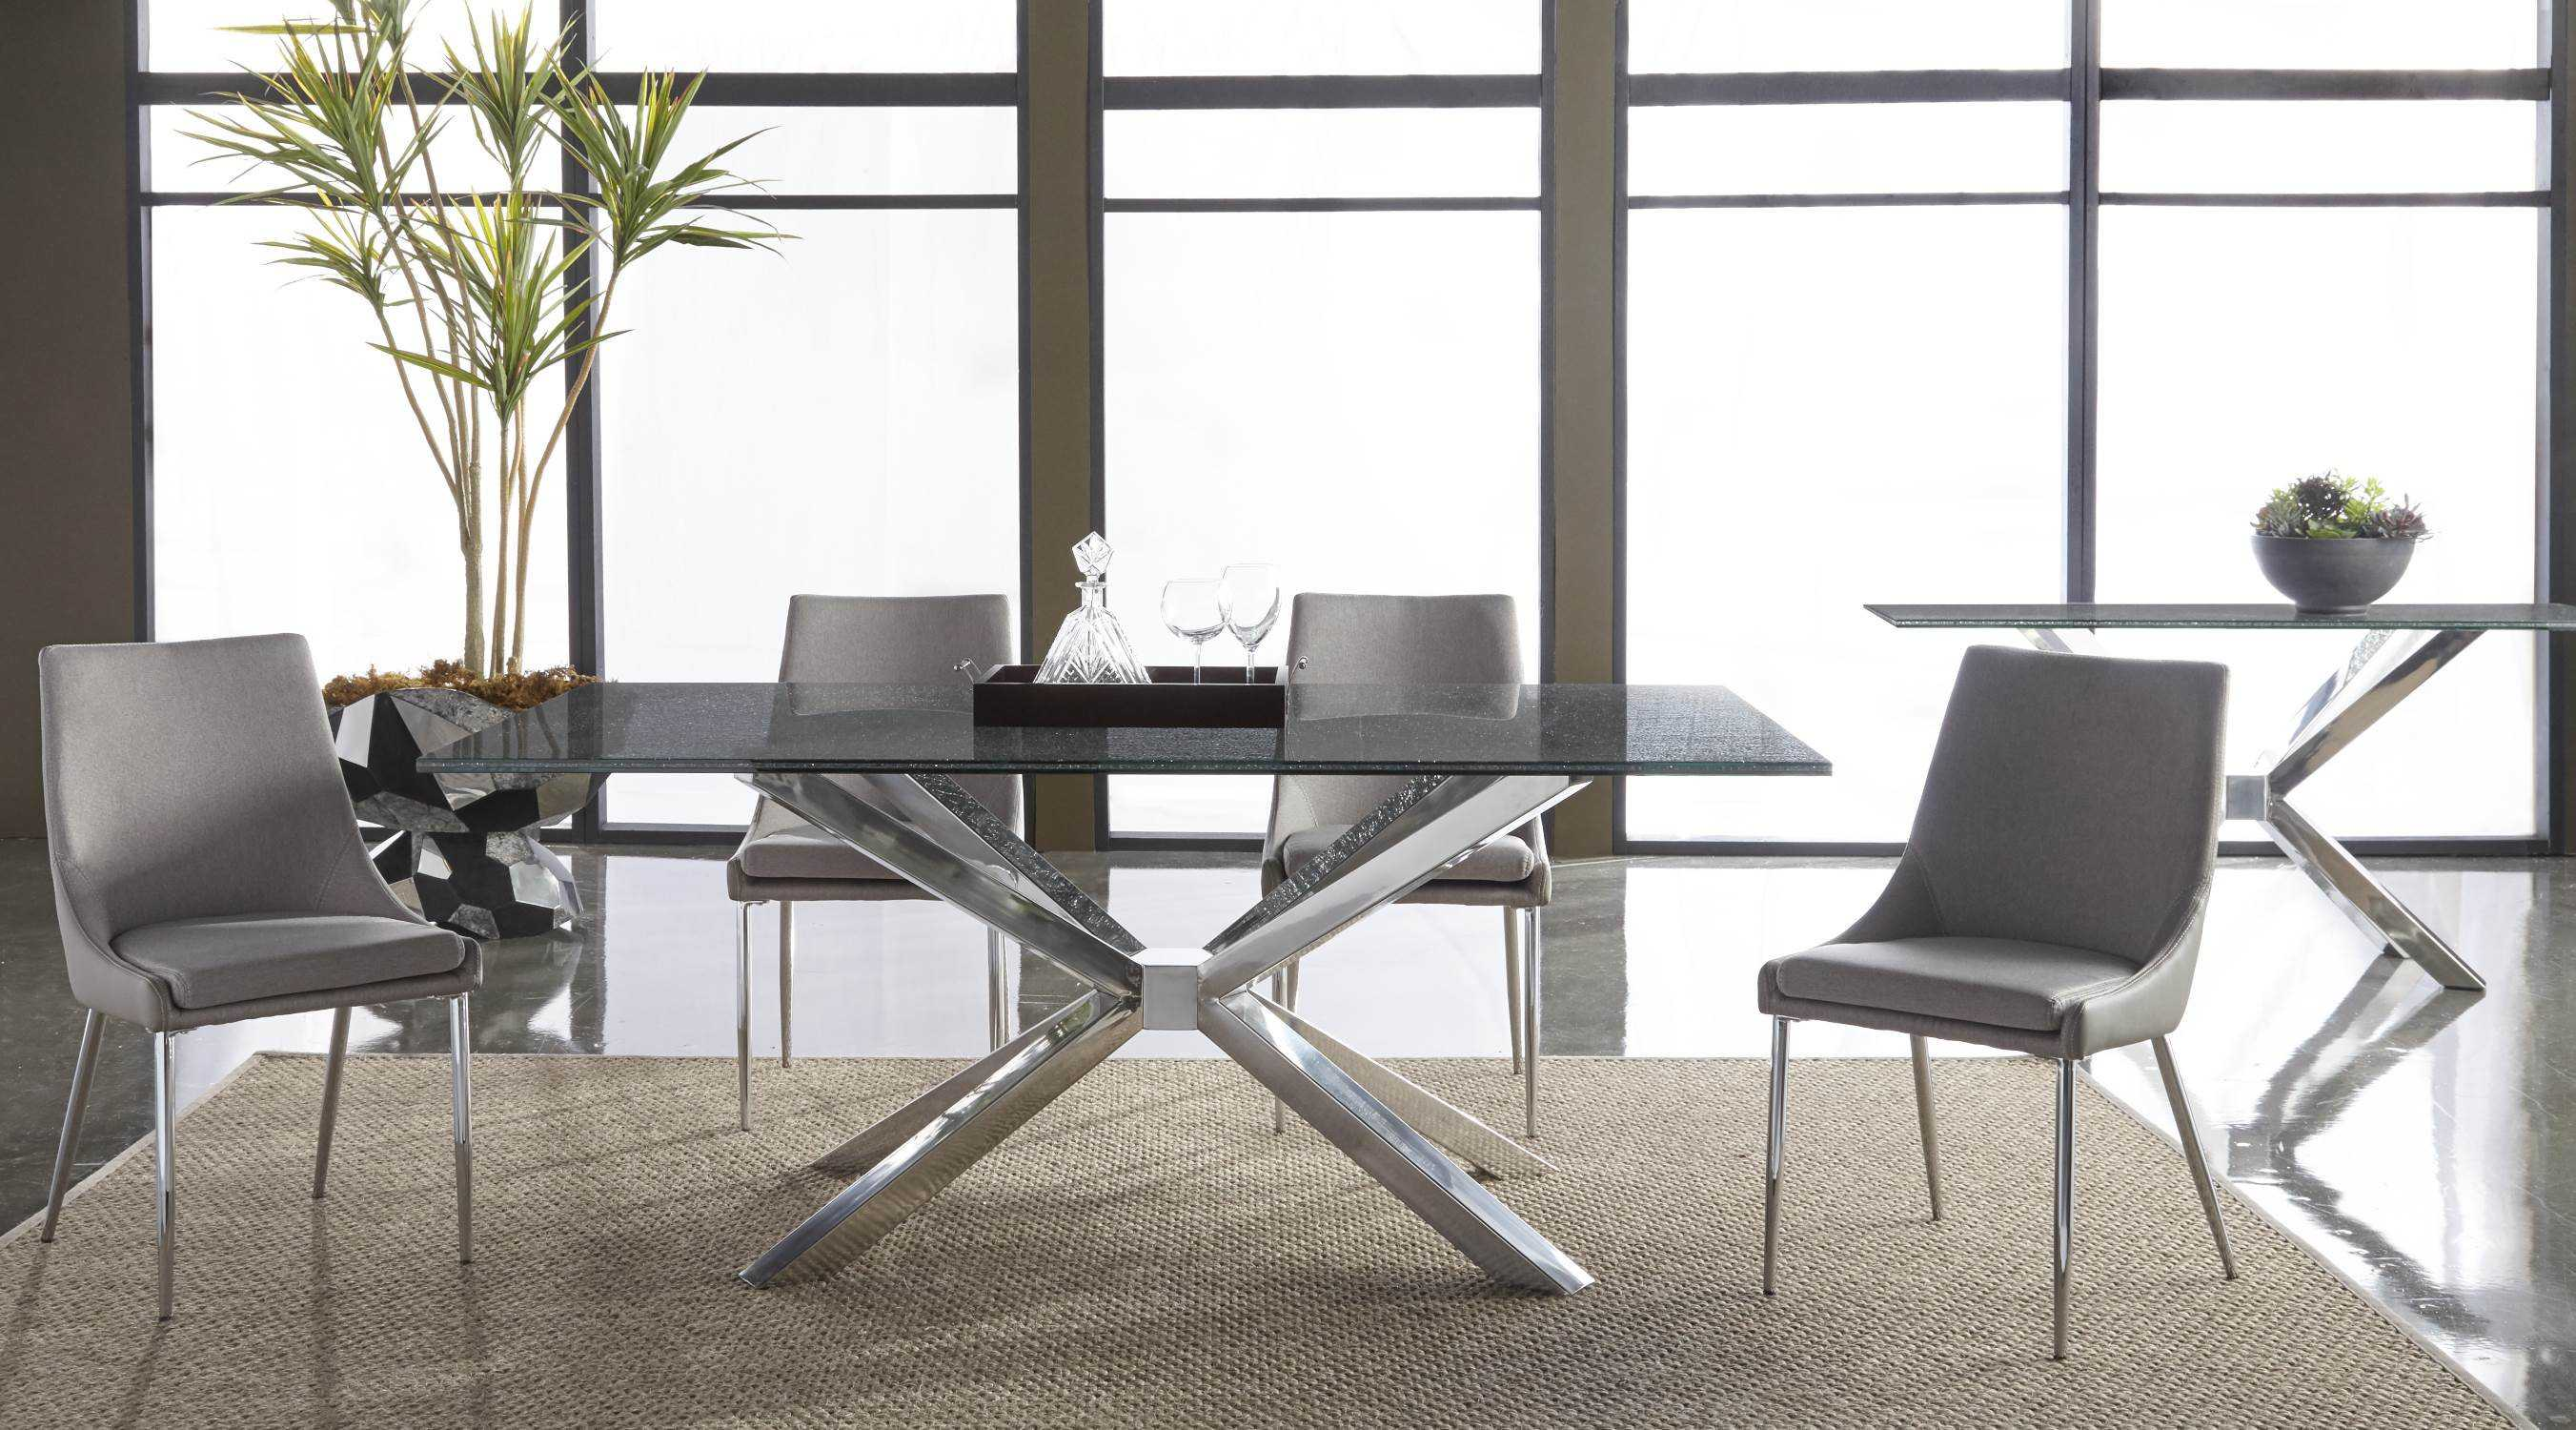 Star Furniture Dining Table: Star International Furniture Ritz Mantis Dining Room Set